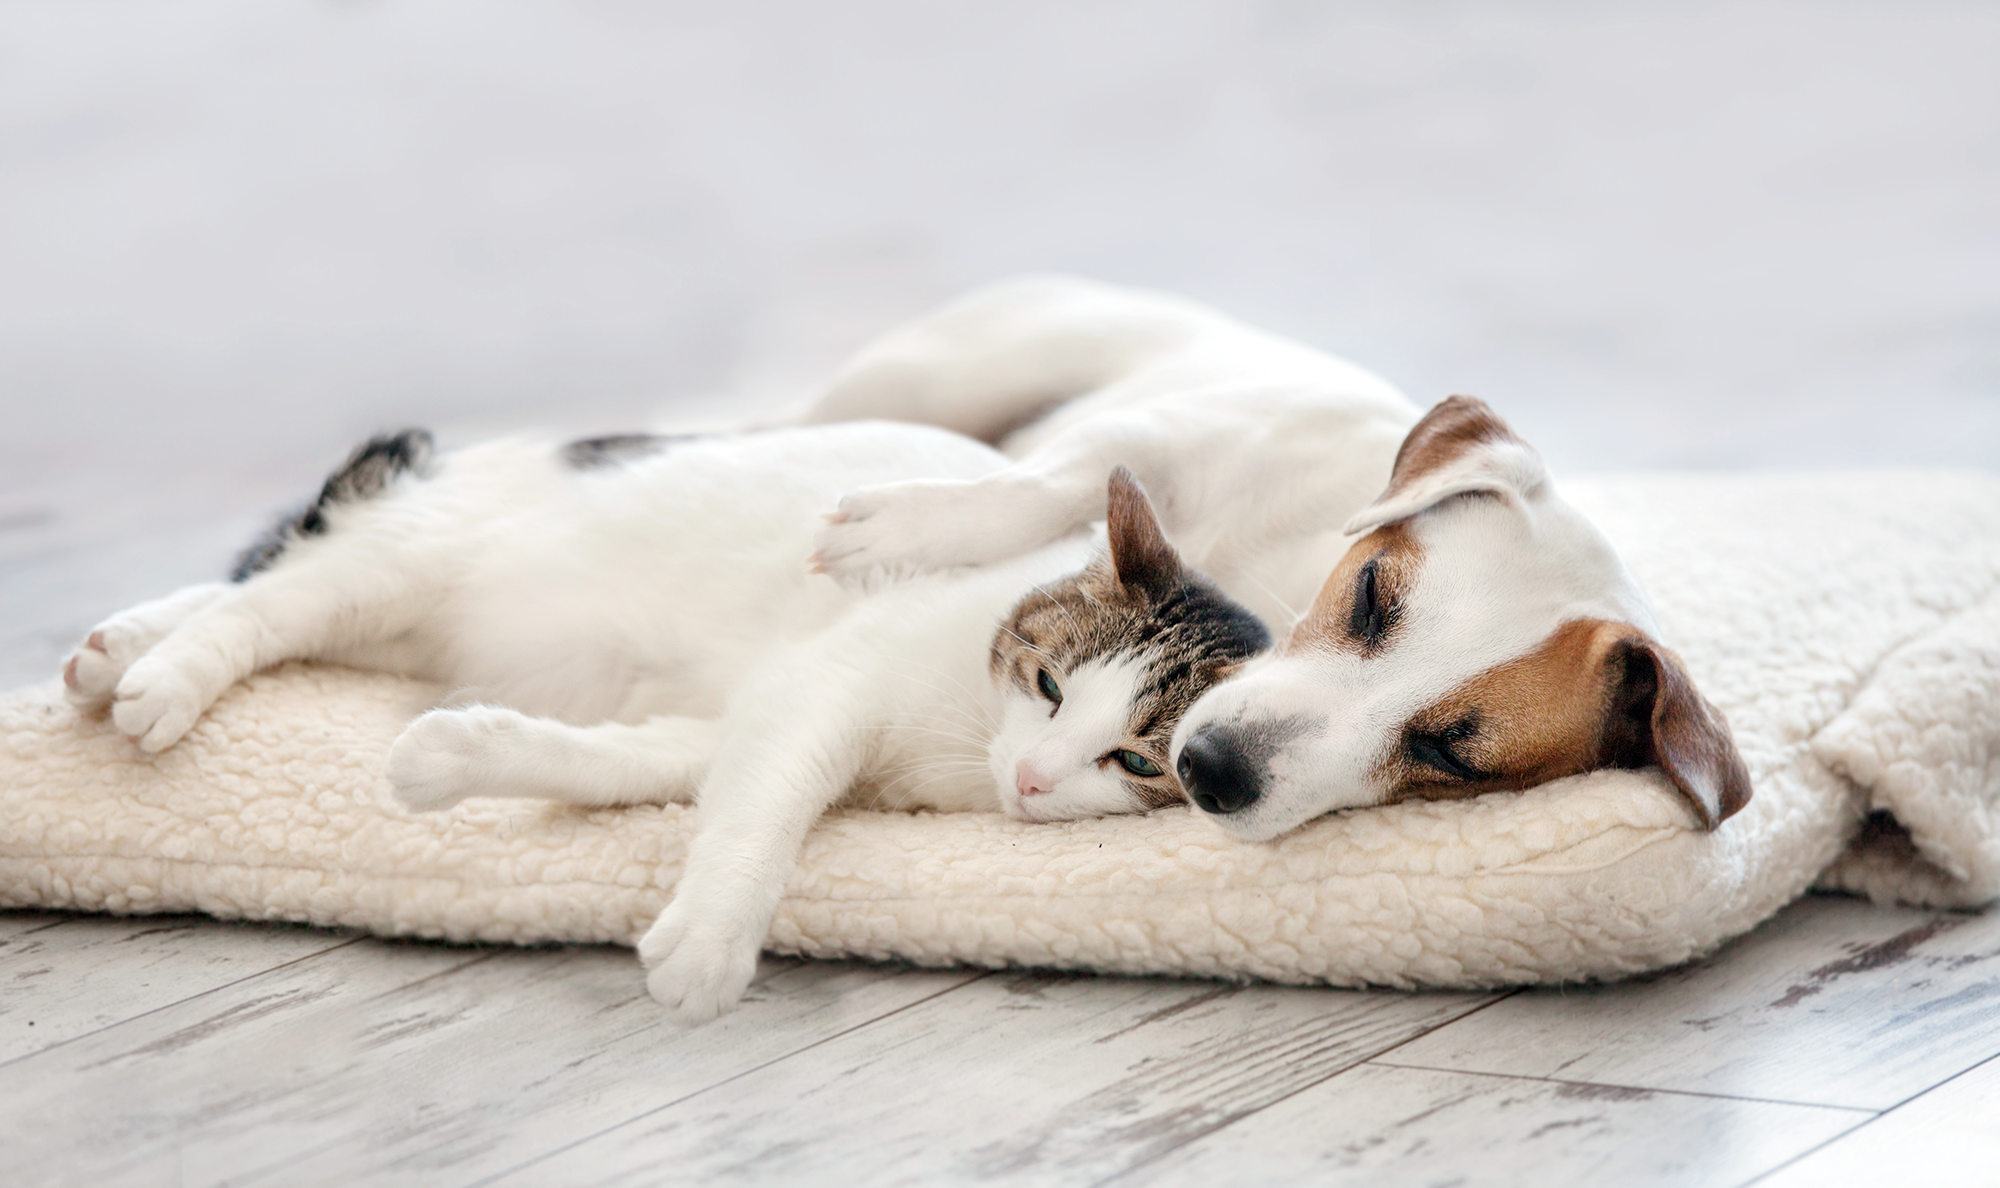 cat and dog sleeping cuddled up together on a fleece cushion on the floor